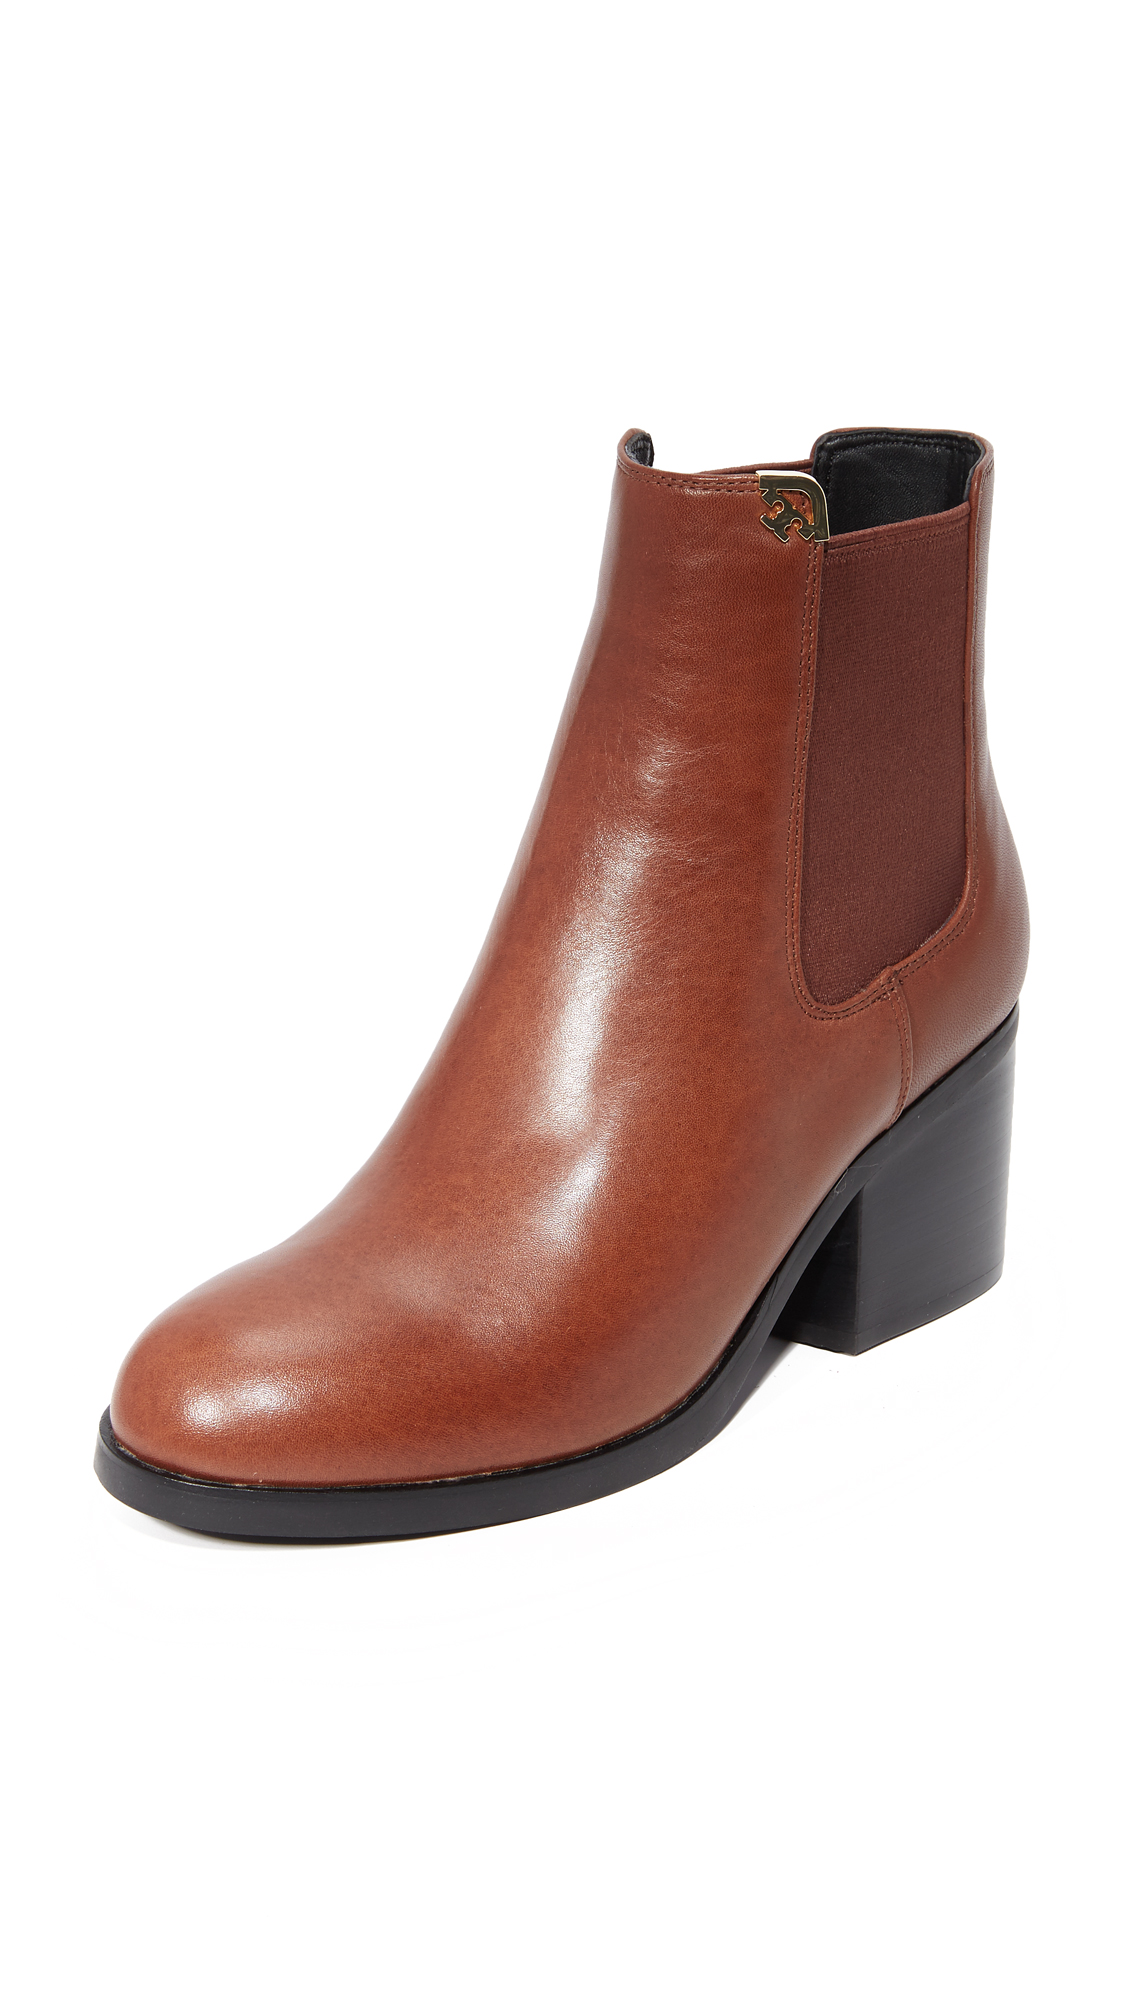 Tory Burch Nicola Booties - Prairie Brown